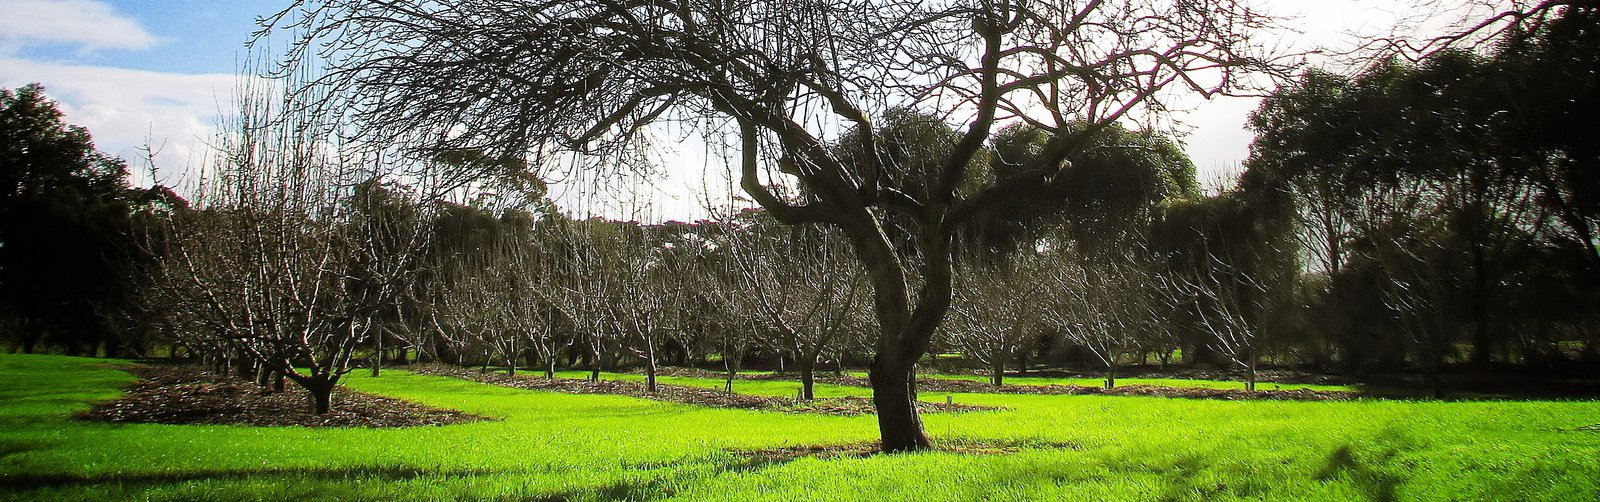 Toora Pear Orchard